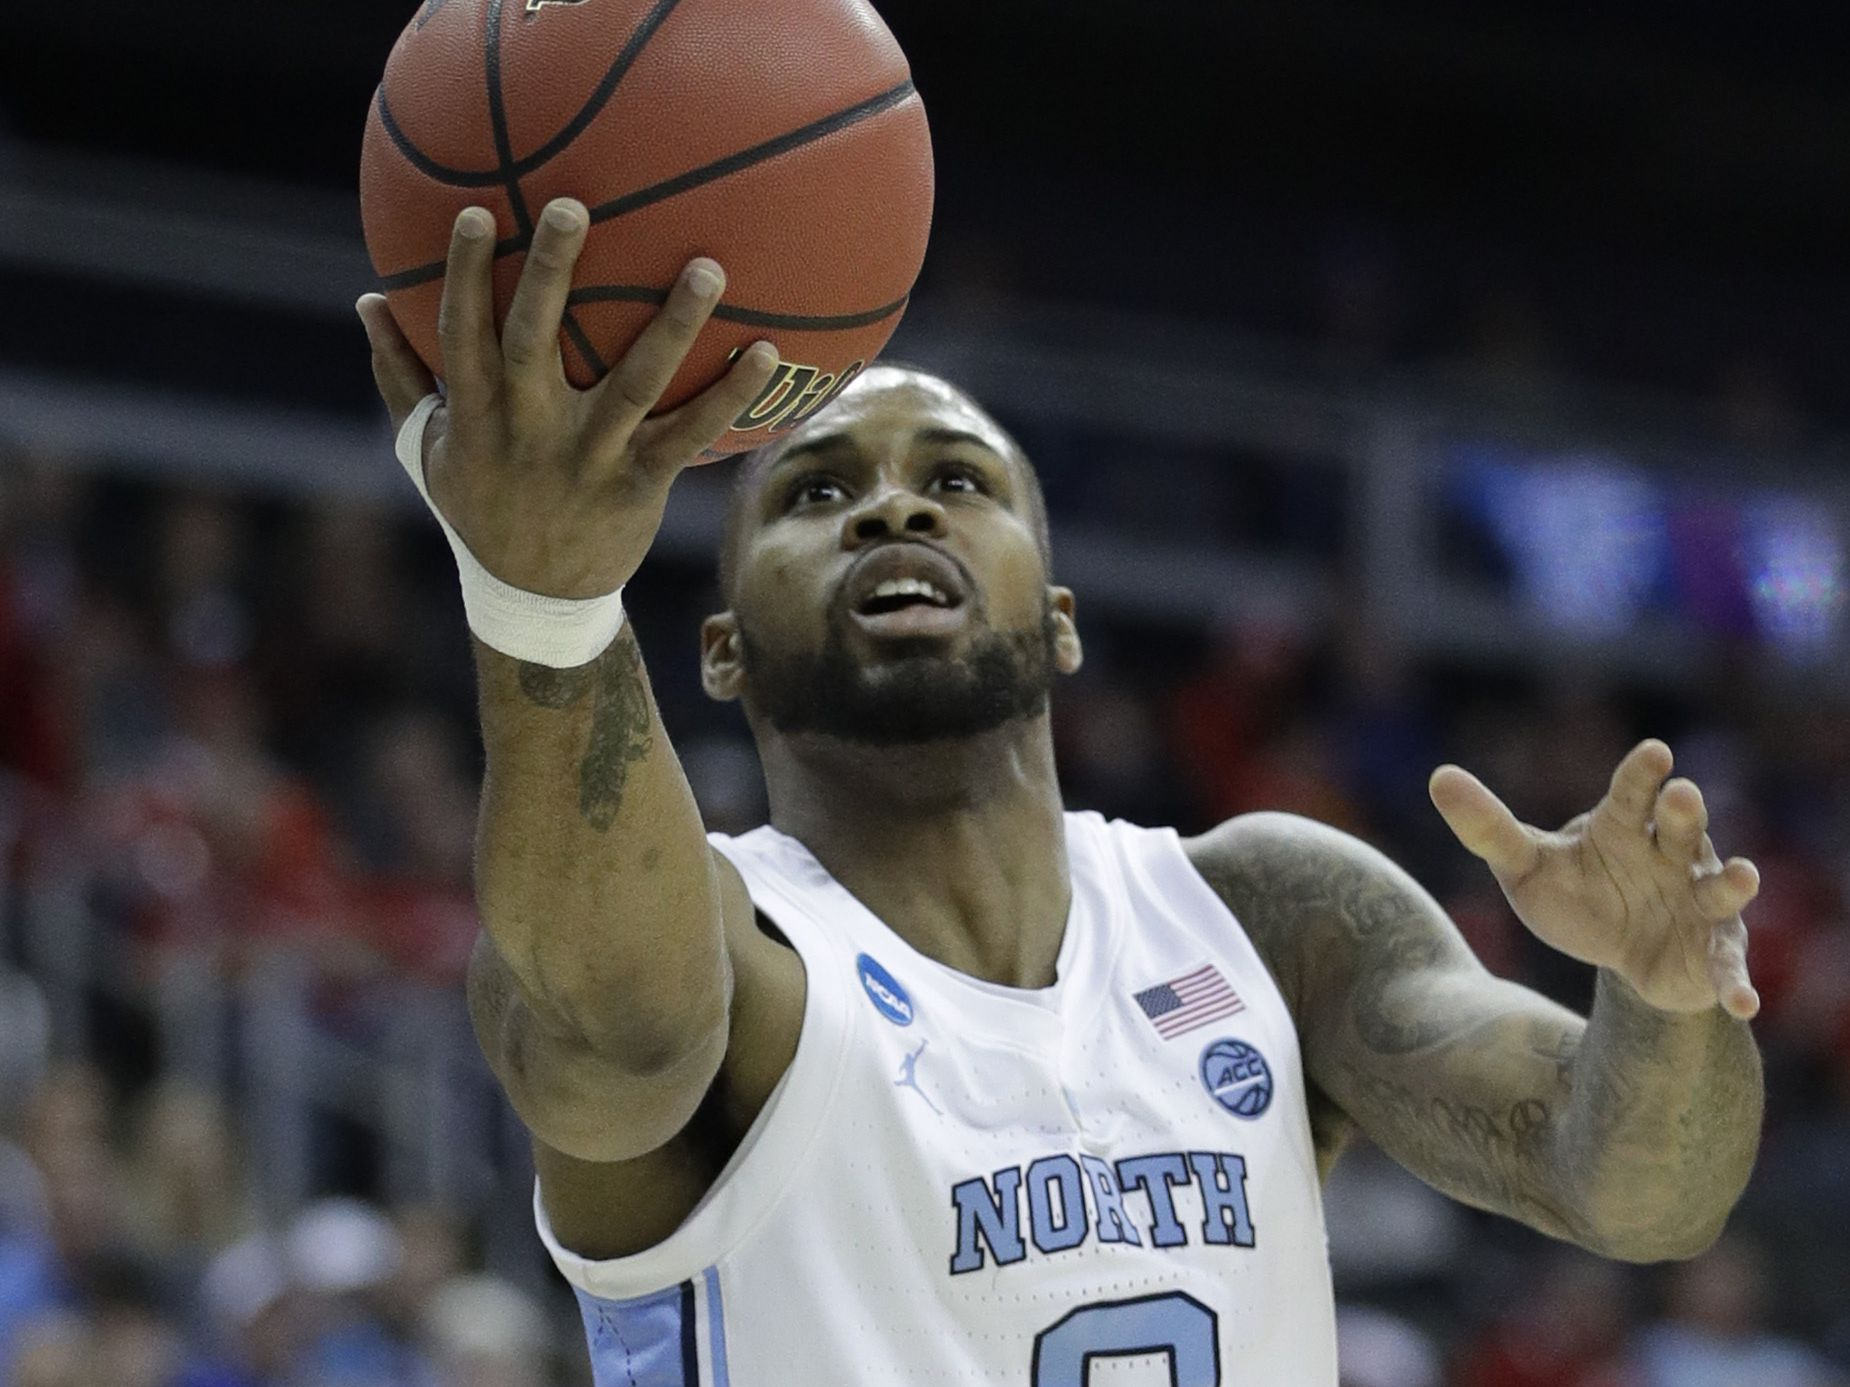 UNC guard Woods announces plans to transfer from program